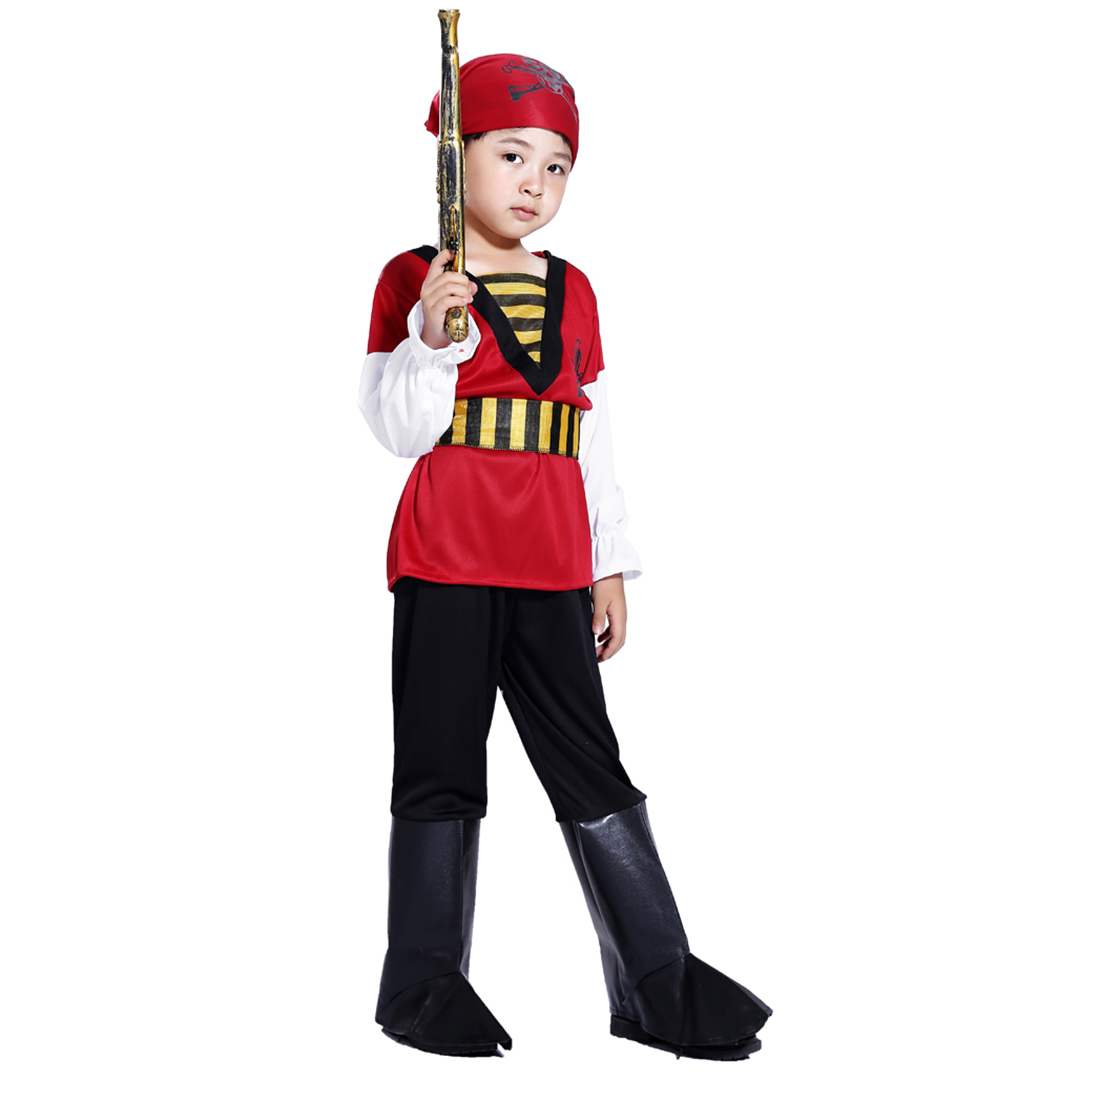 Halloween Pirate Cosplay Suit Boy Red Skull Pirate Costume Set With Pirate Blaster For 4-6 Years Old - M Size